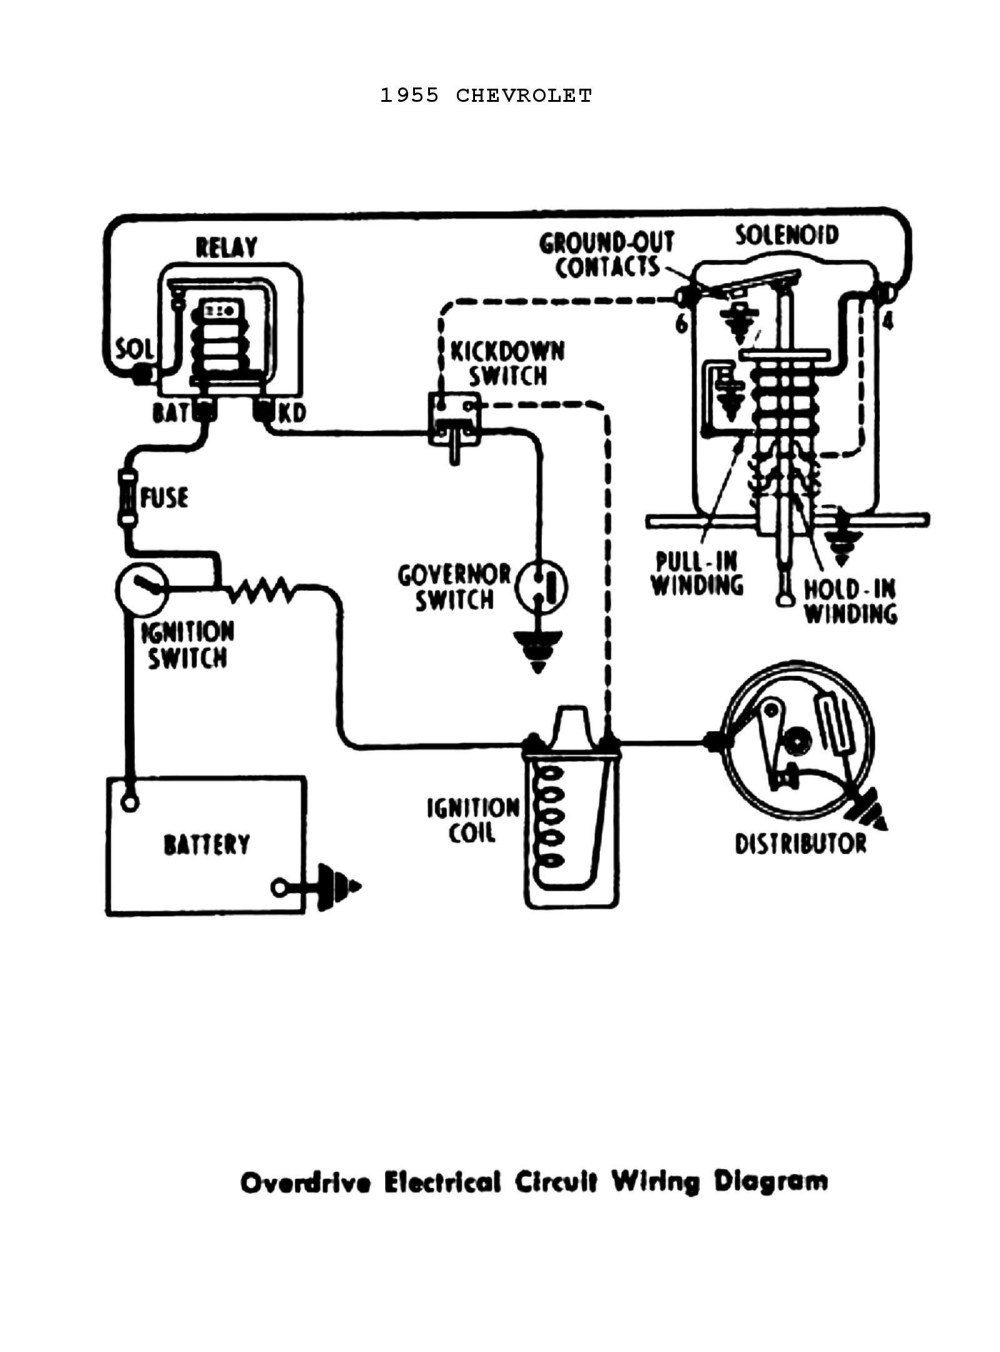 medium resolution of chevy hei ignition system wiring diagrams wiring diagram will be a chevrolet hei distributor wiring diagram